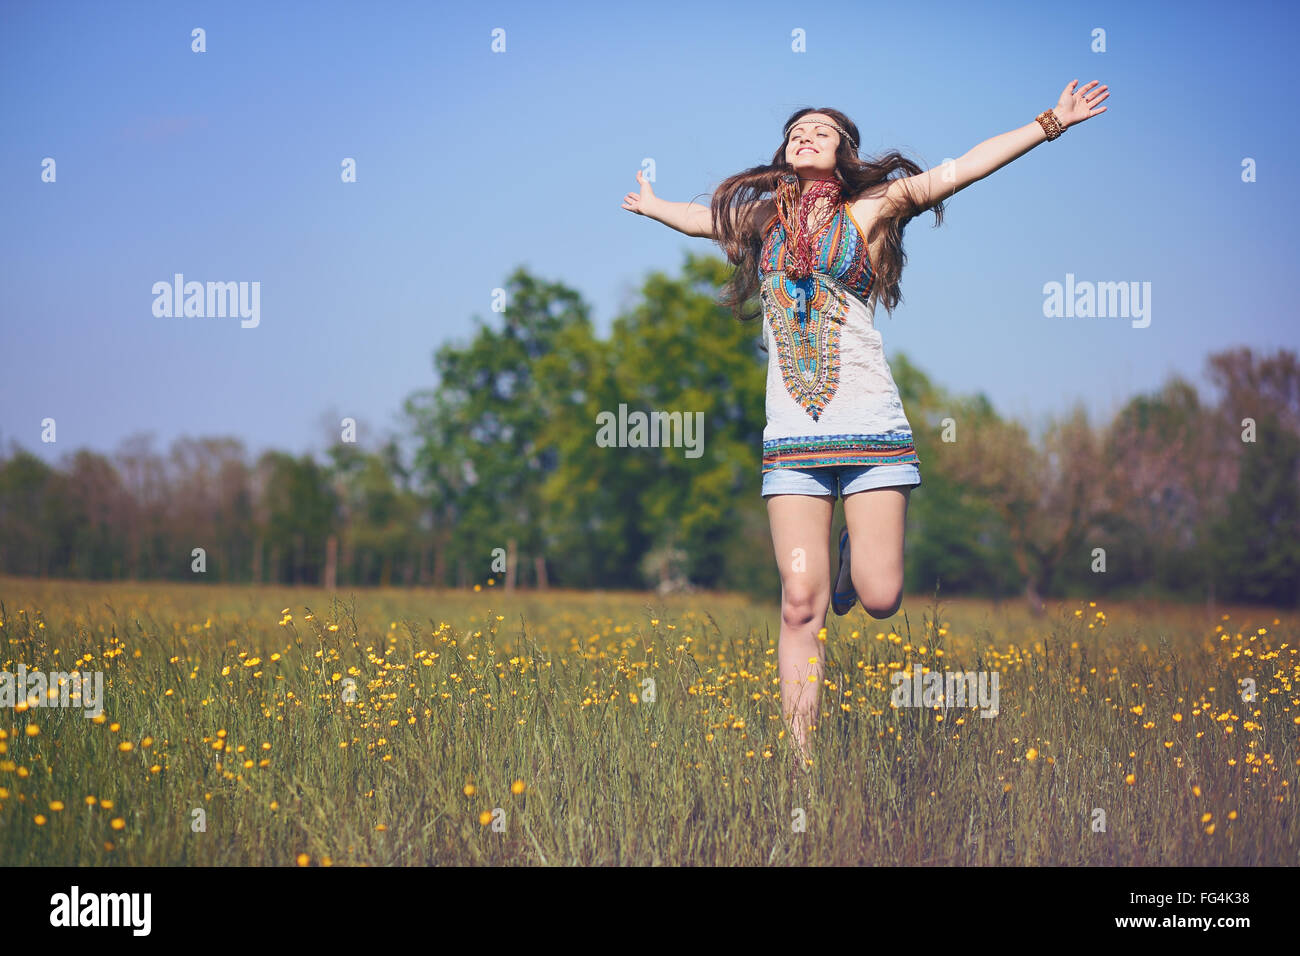 Happy and smiling hippie woman jumps in a summer field . Vintage photo effect Stock Photo